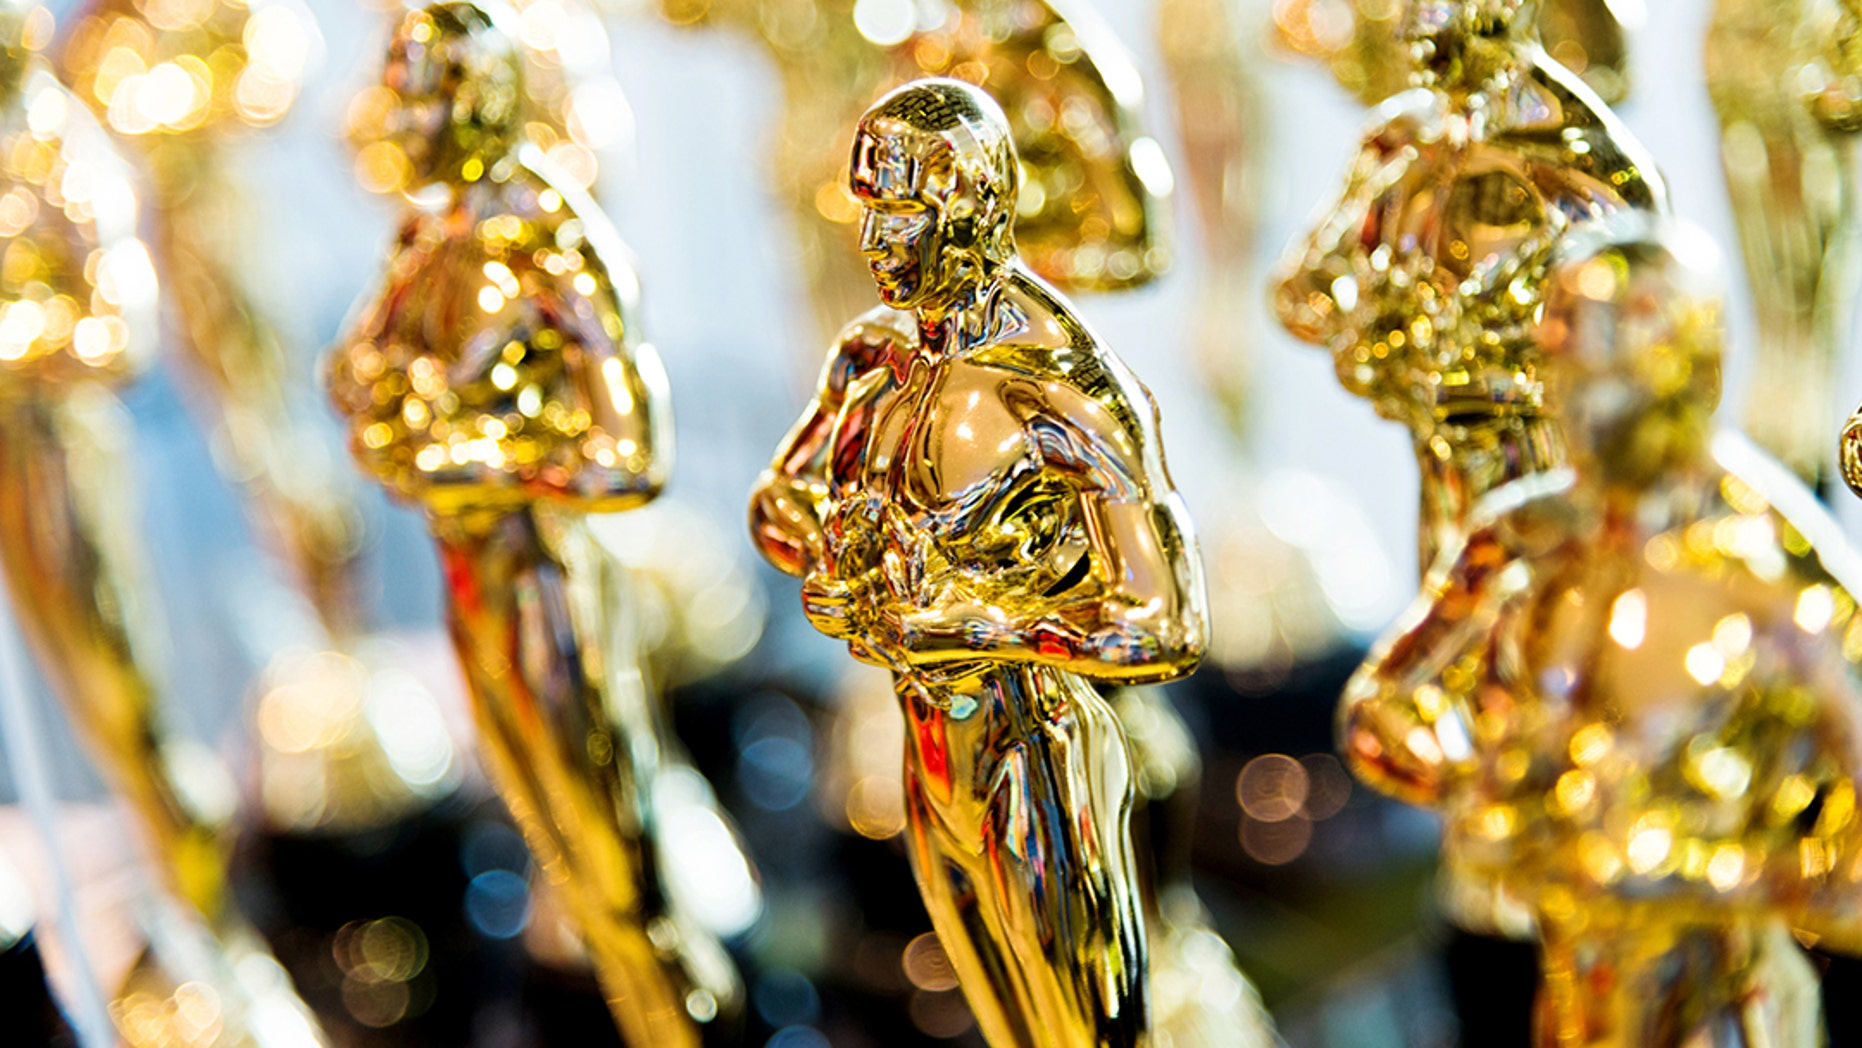 Gourmet chocolates, candies and beverages fill this year's swag bags at the 90th annual Academy Awards.